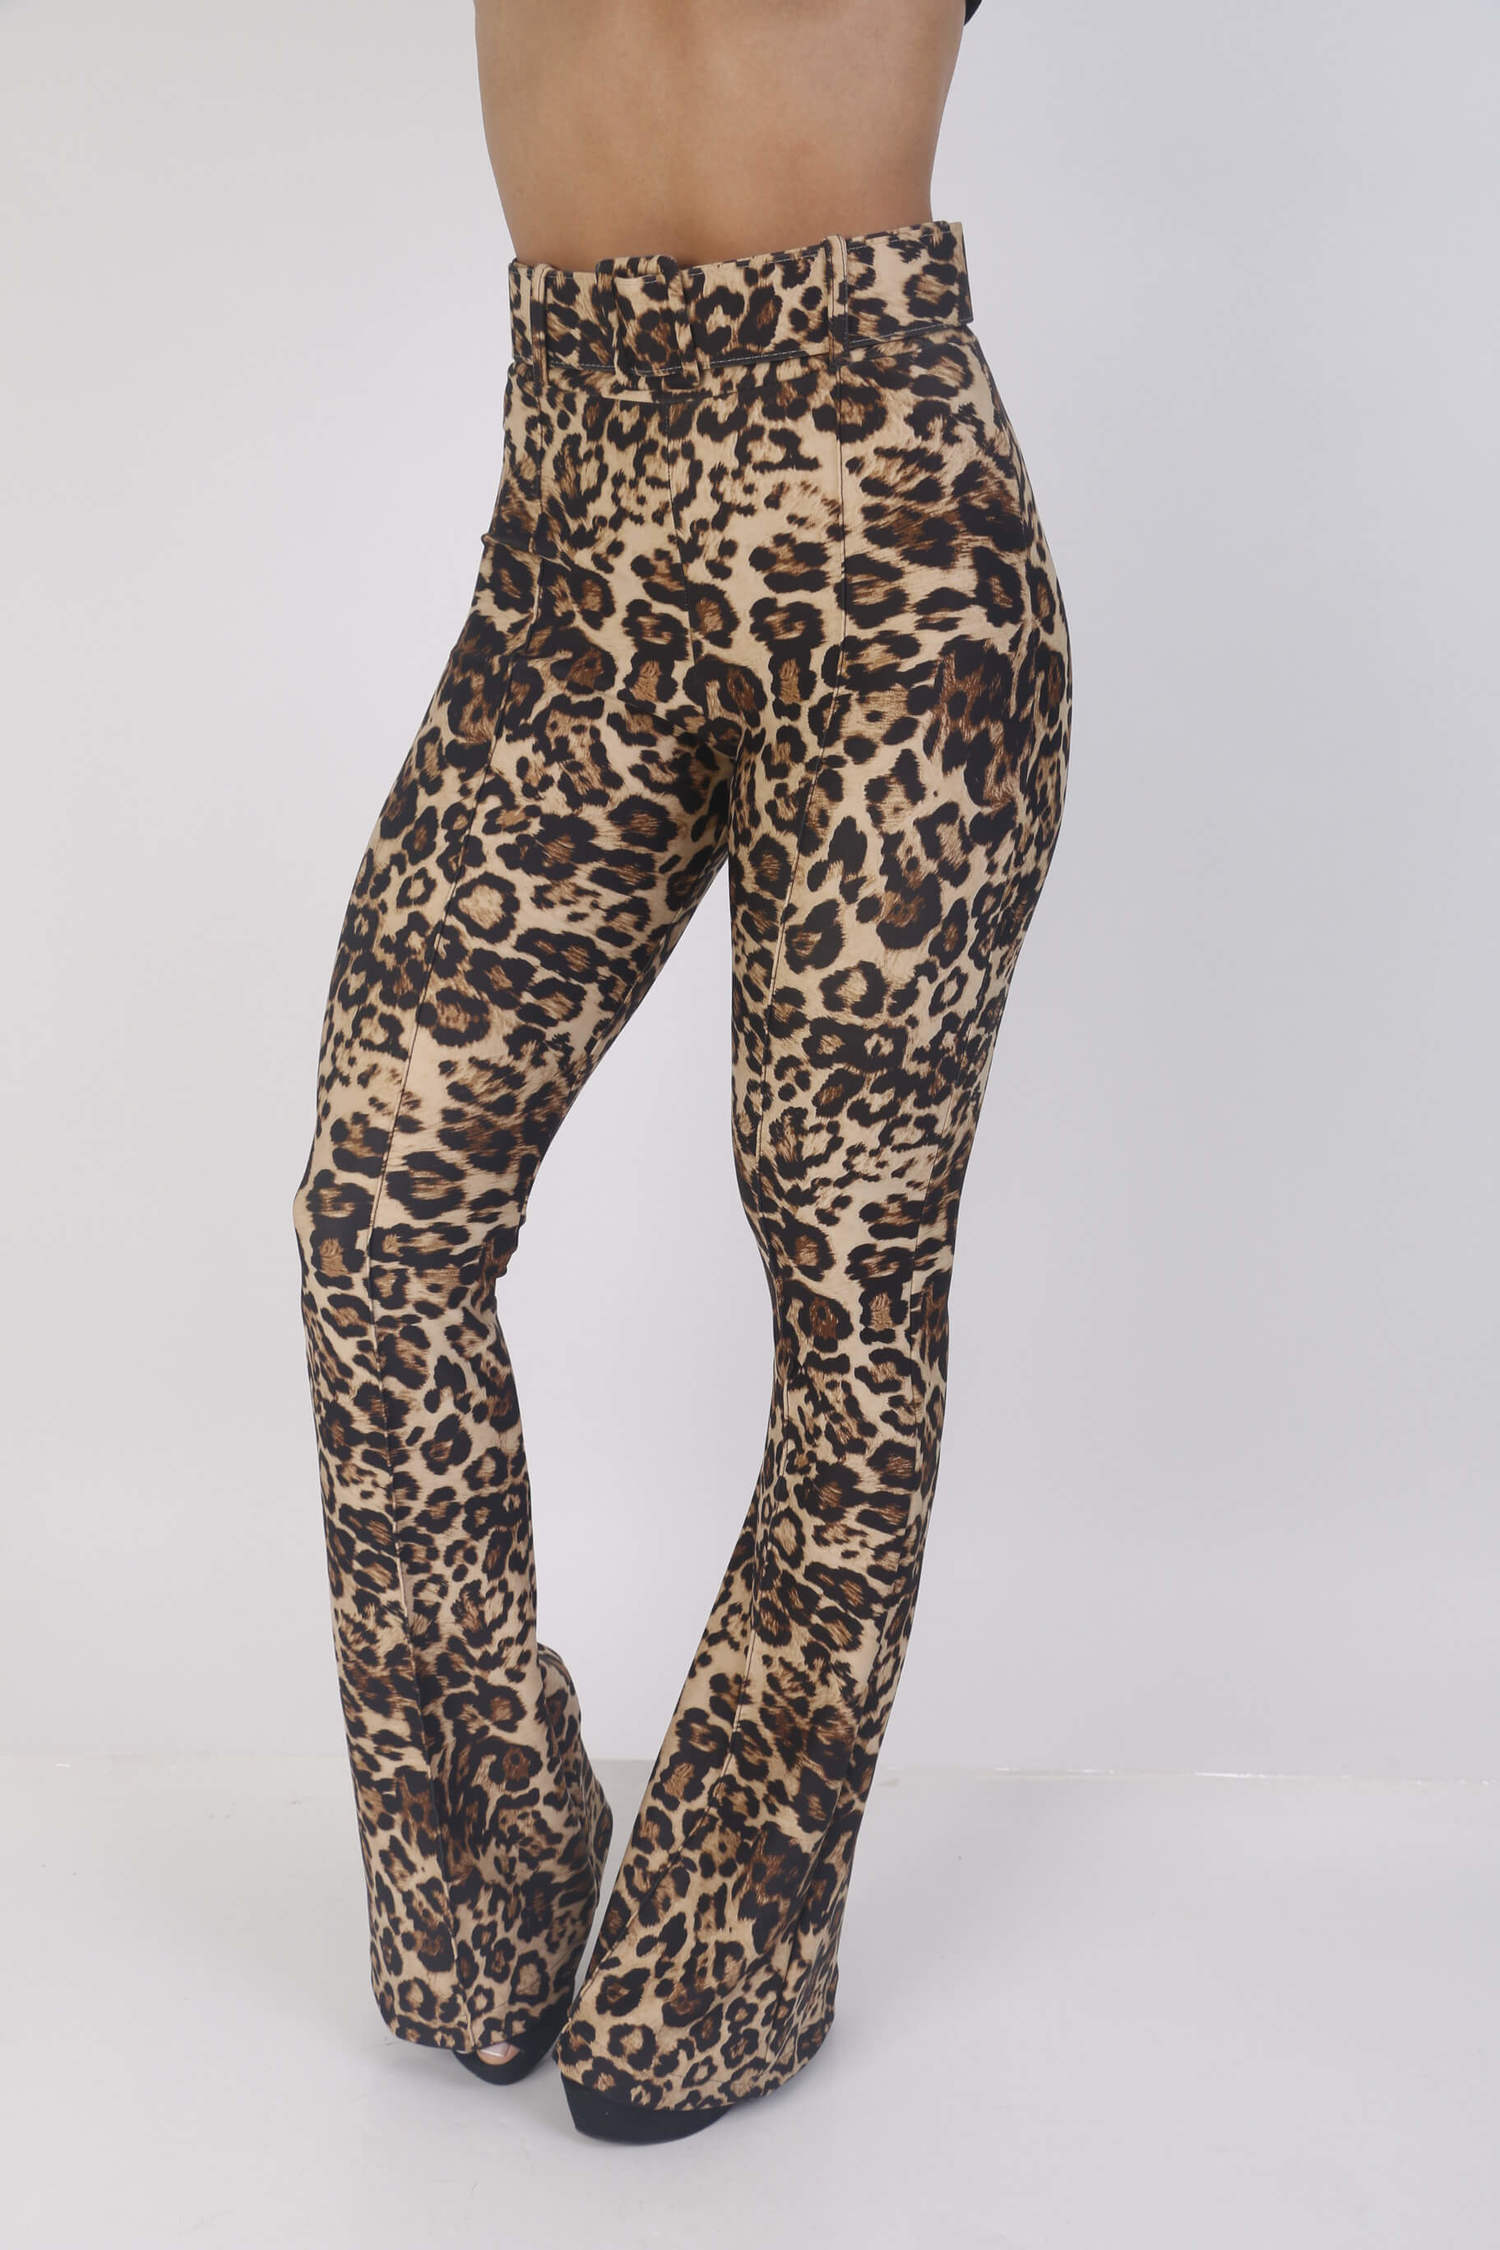 Calça Animal print estampa de onça